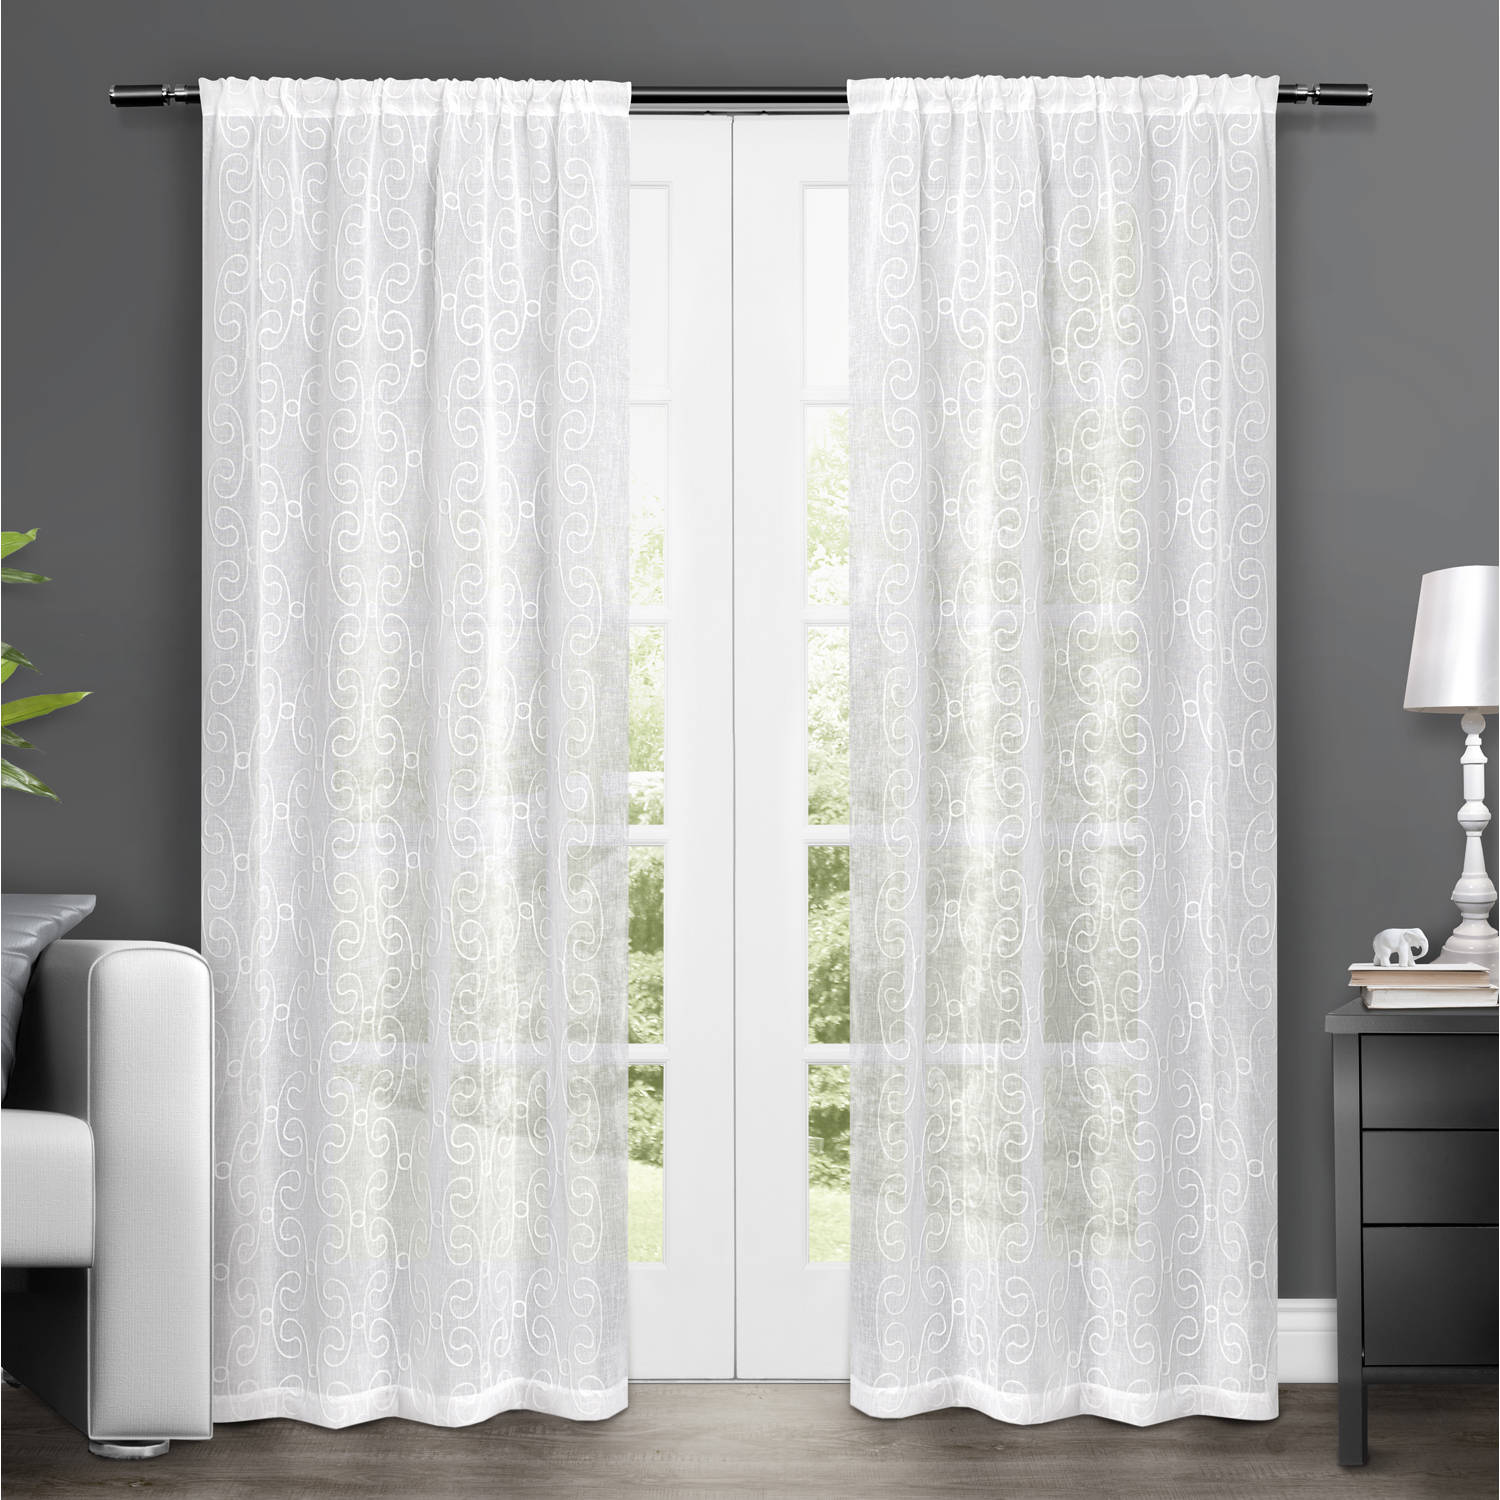 """Exclusive Home Salzberg Embroidered Semi-Sheer Rod Pocket Window Curtain Panels, 50"""" x 84"""", White, Set of 2"""